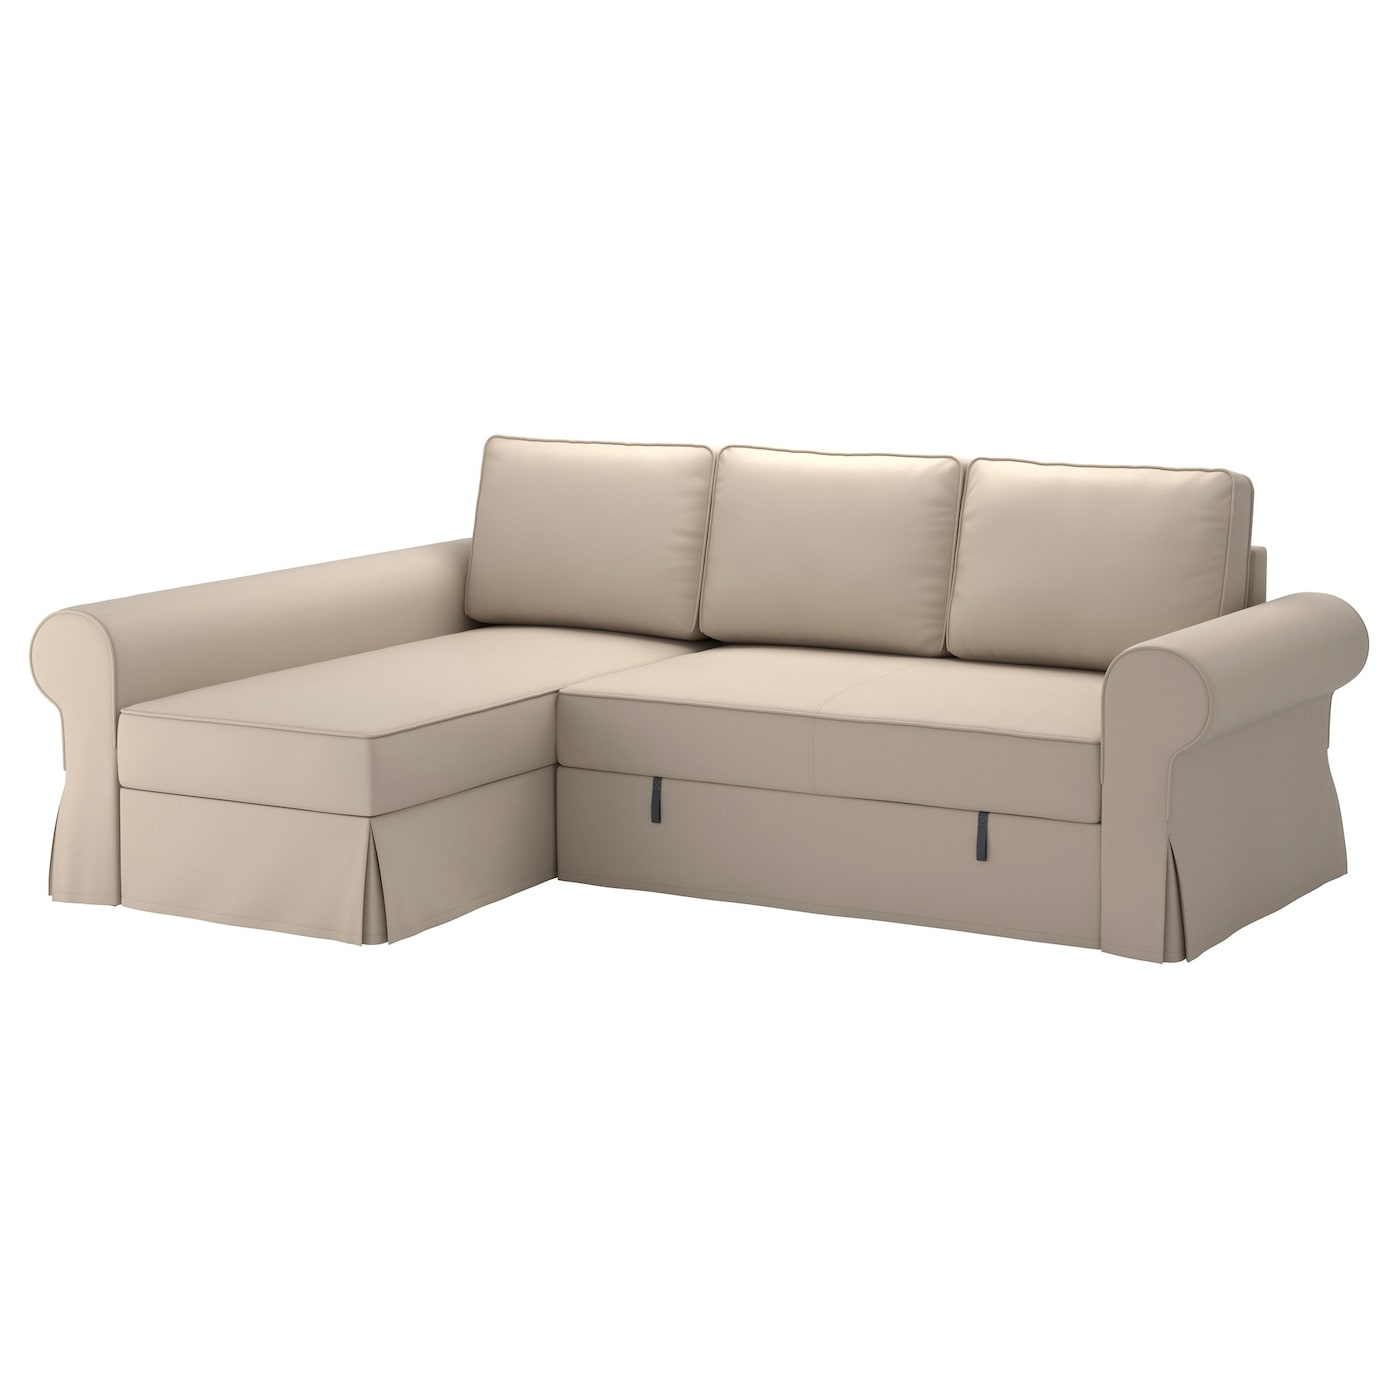 Backabro sofa bed with chaise longue ramna beige ikea for Chaise longue achat